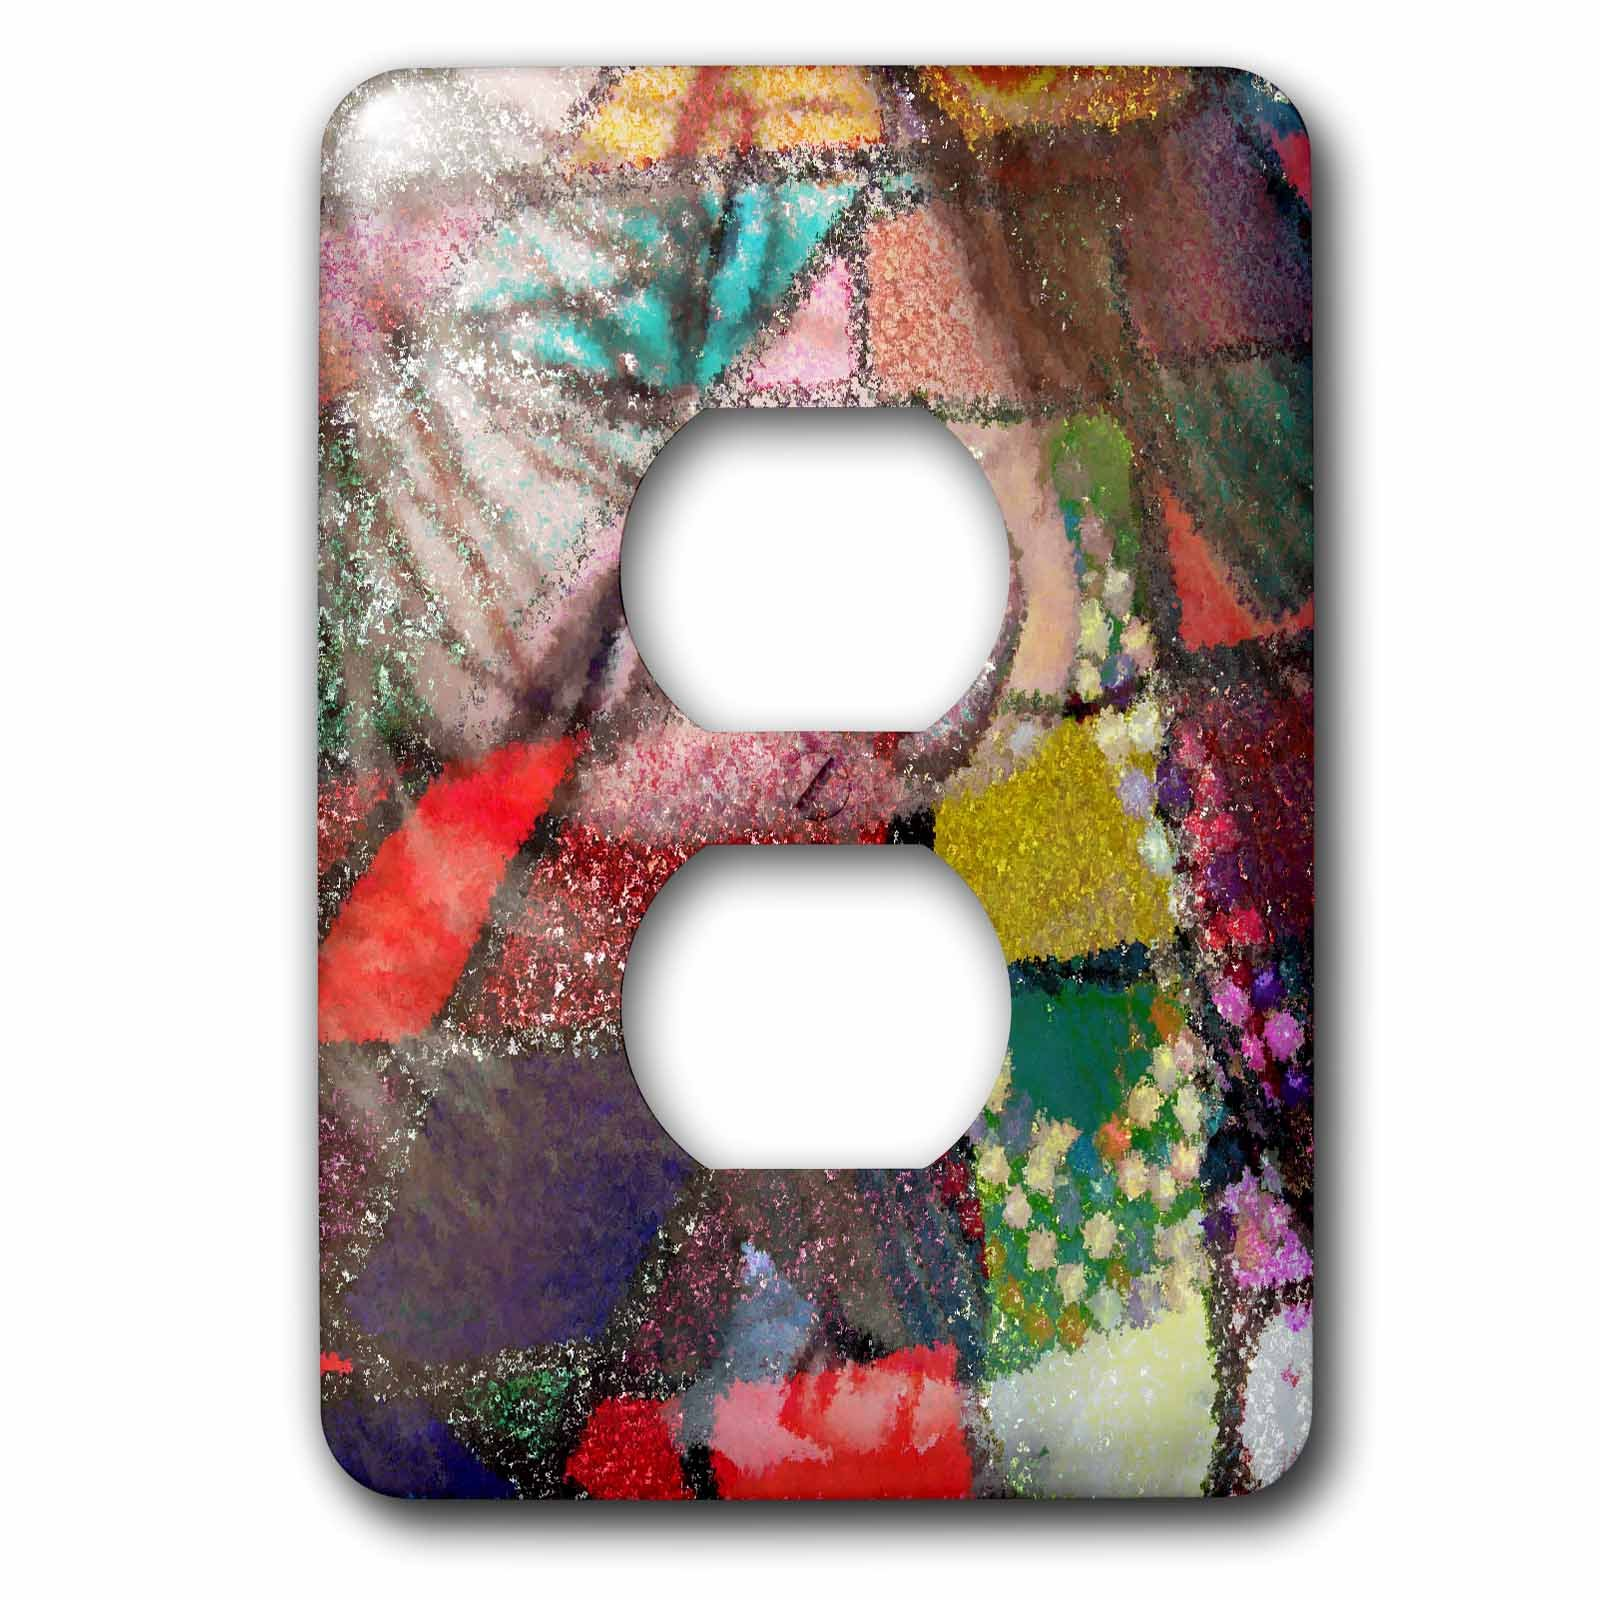 3dRose Jos Fauxtographee- Blended Layers High Fashion - A high fashion woman in a colorful pattern with beads - Light Switch Covers - 2 plug outlet cover (lsp_263421_6)